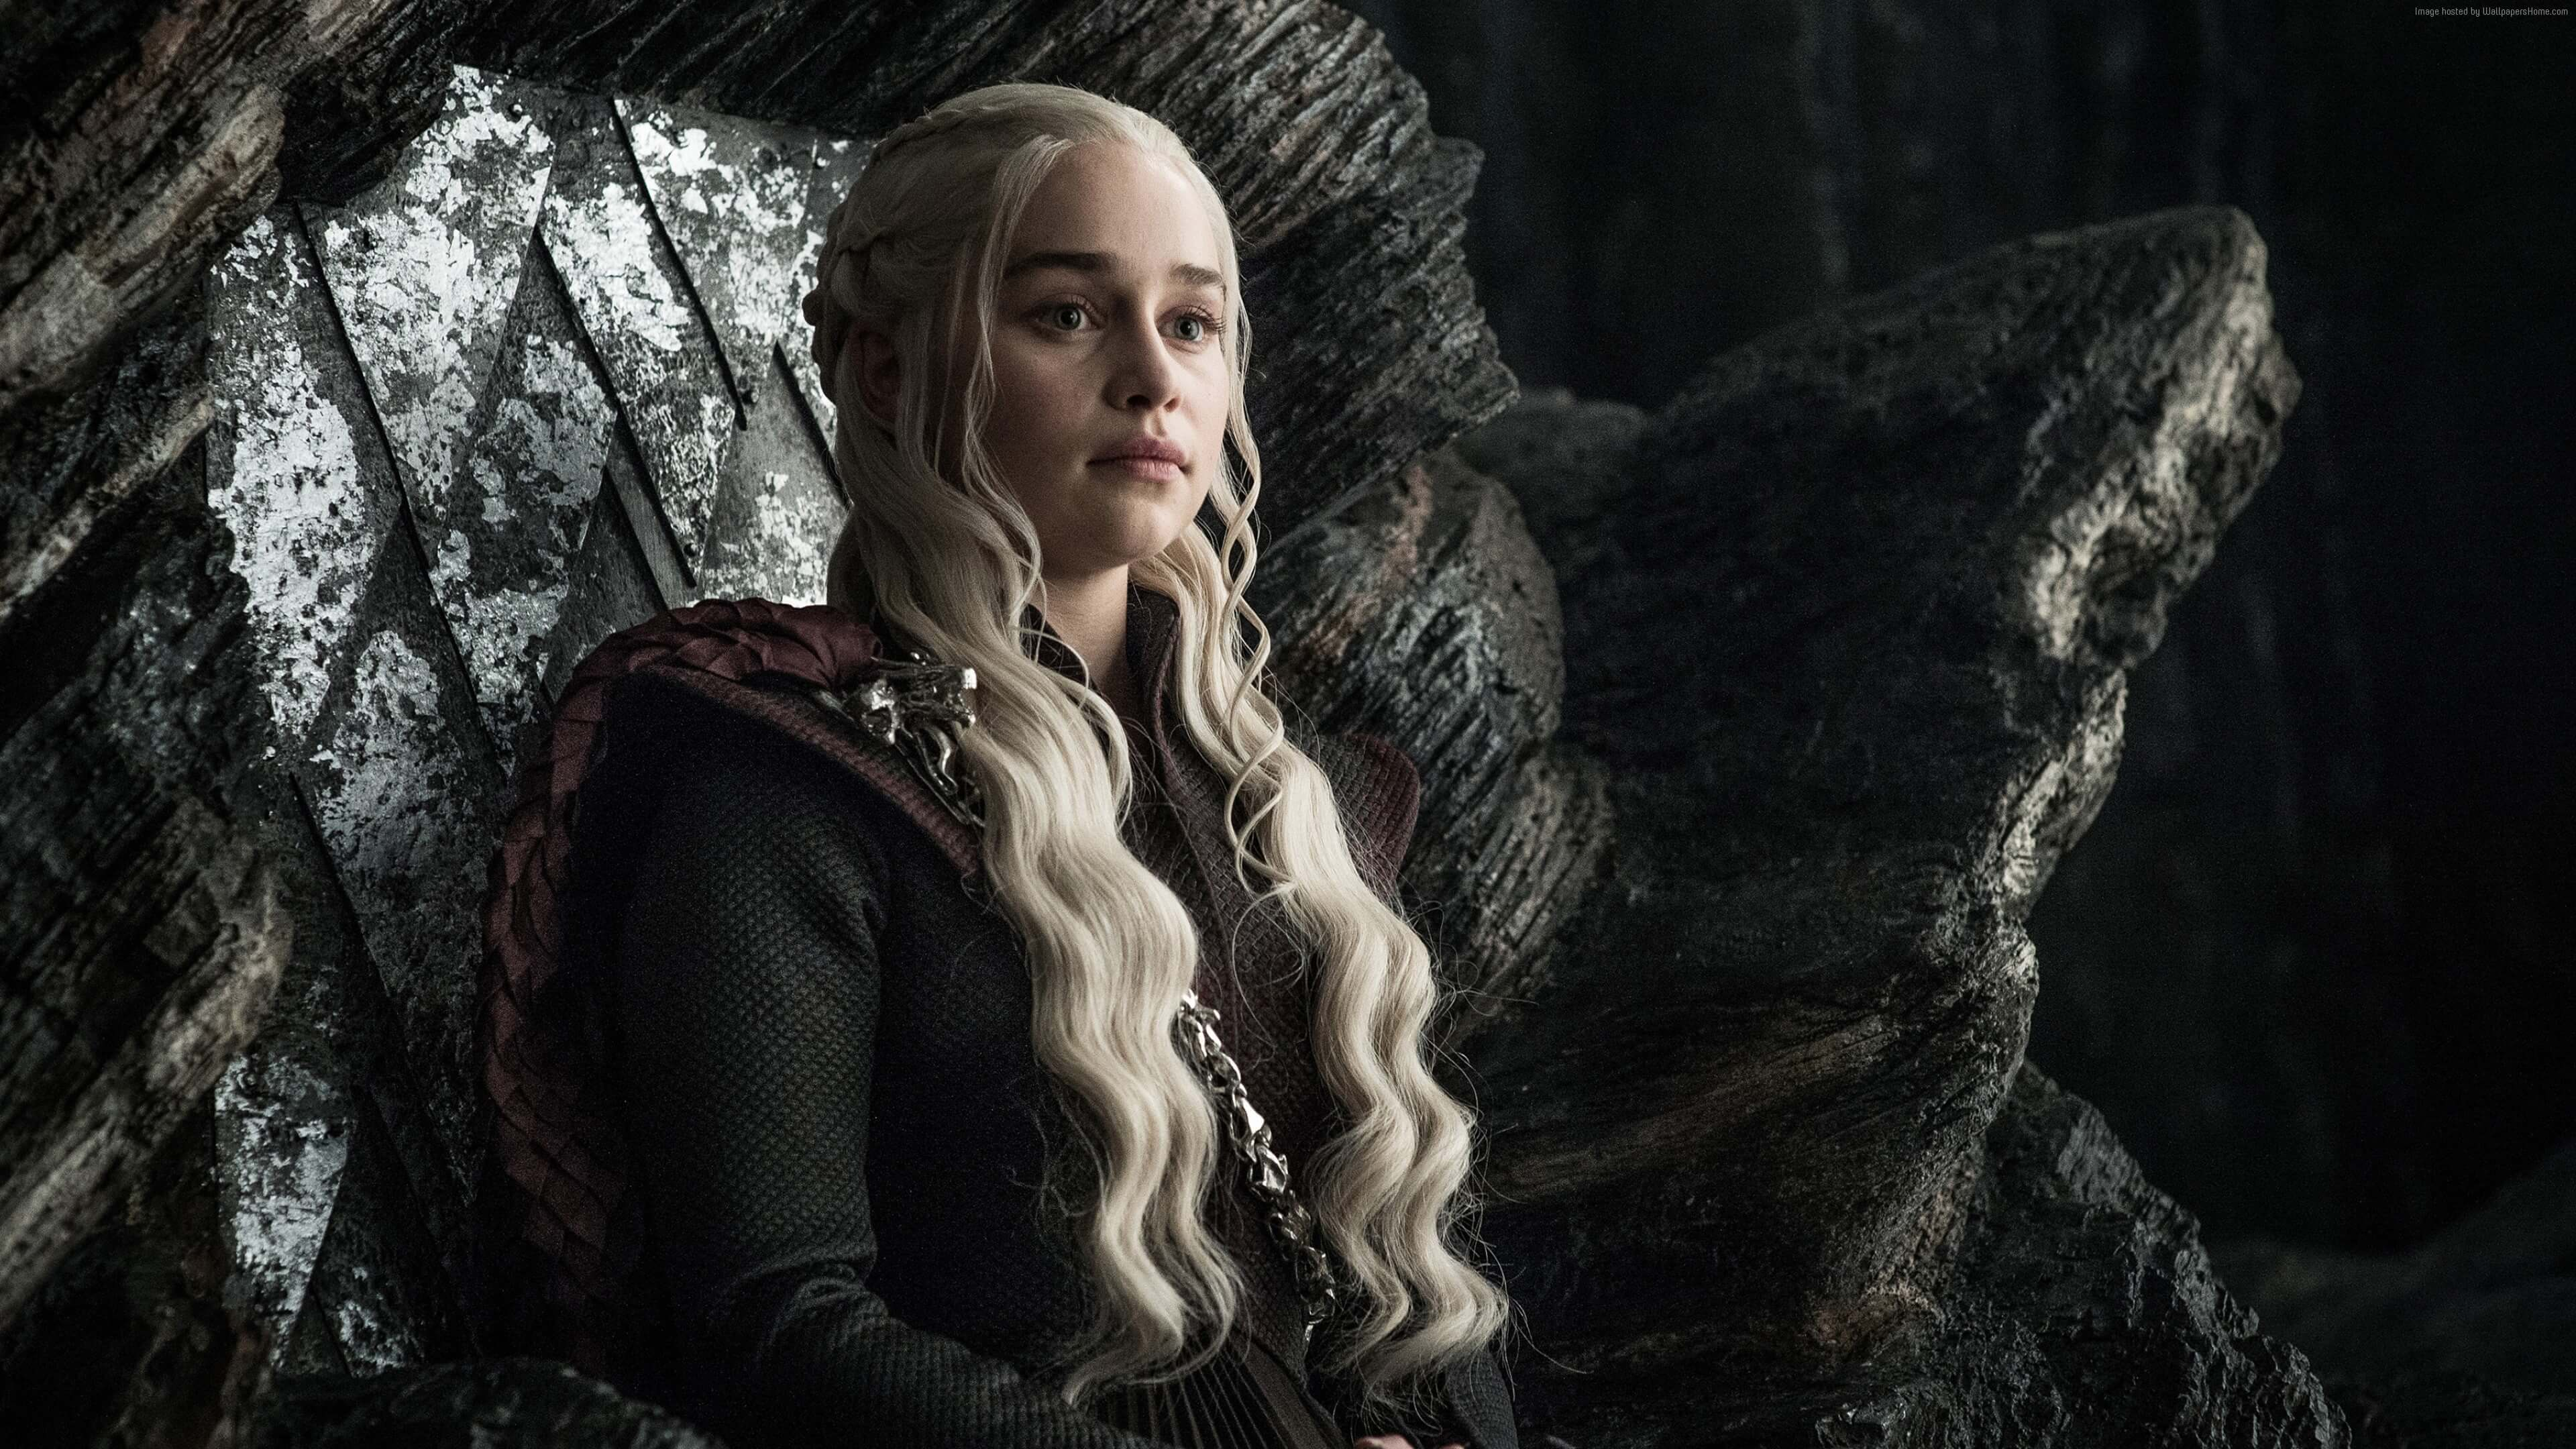 Best Game Of Thrones Got Wallpaper And Images 2019 Iphone2lovely